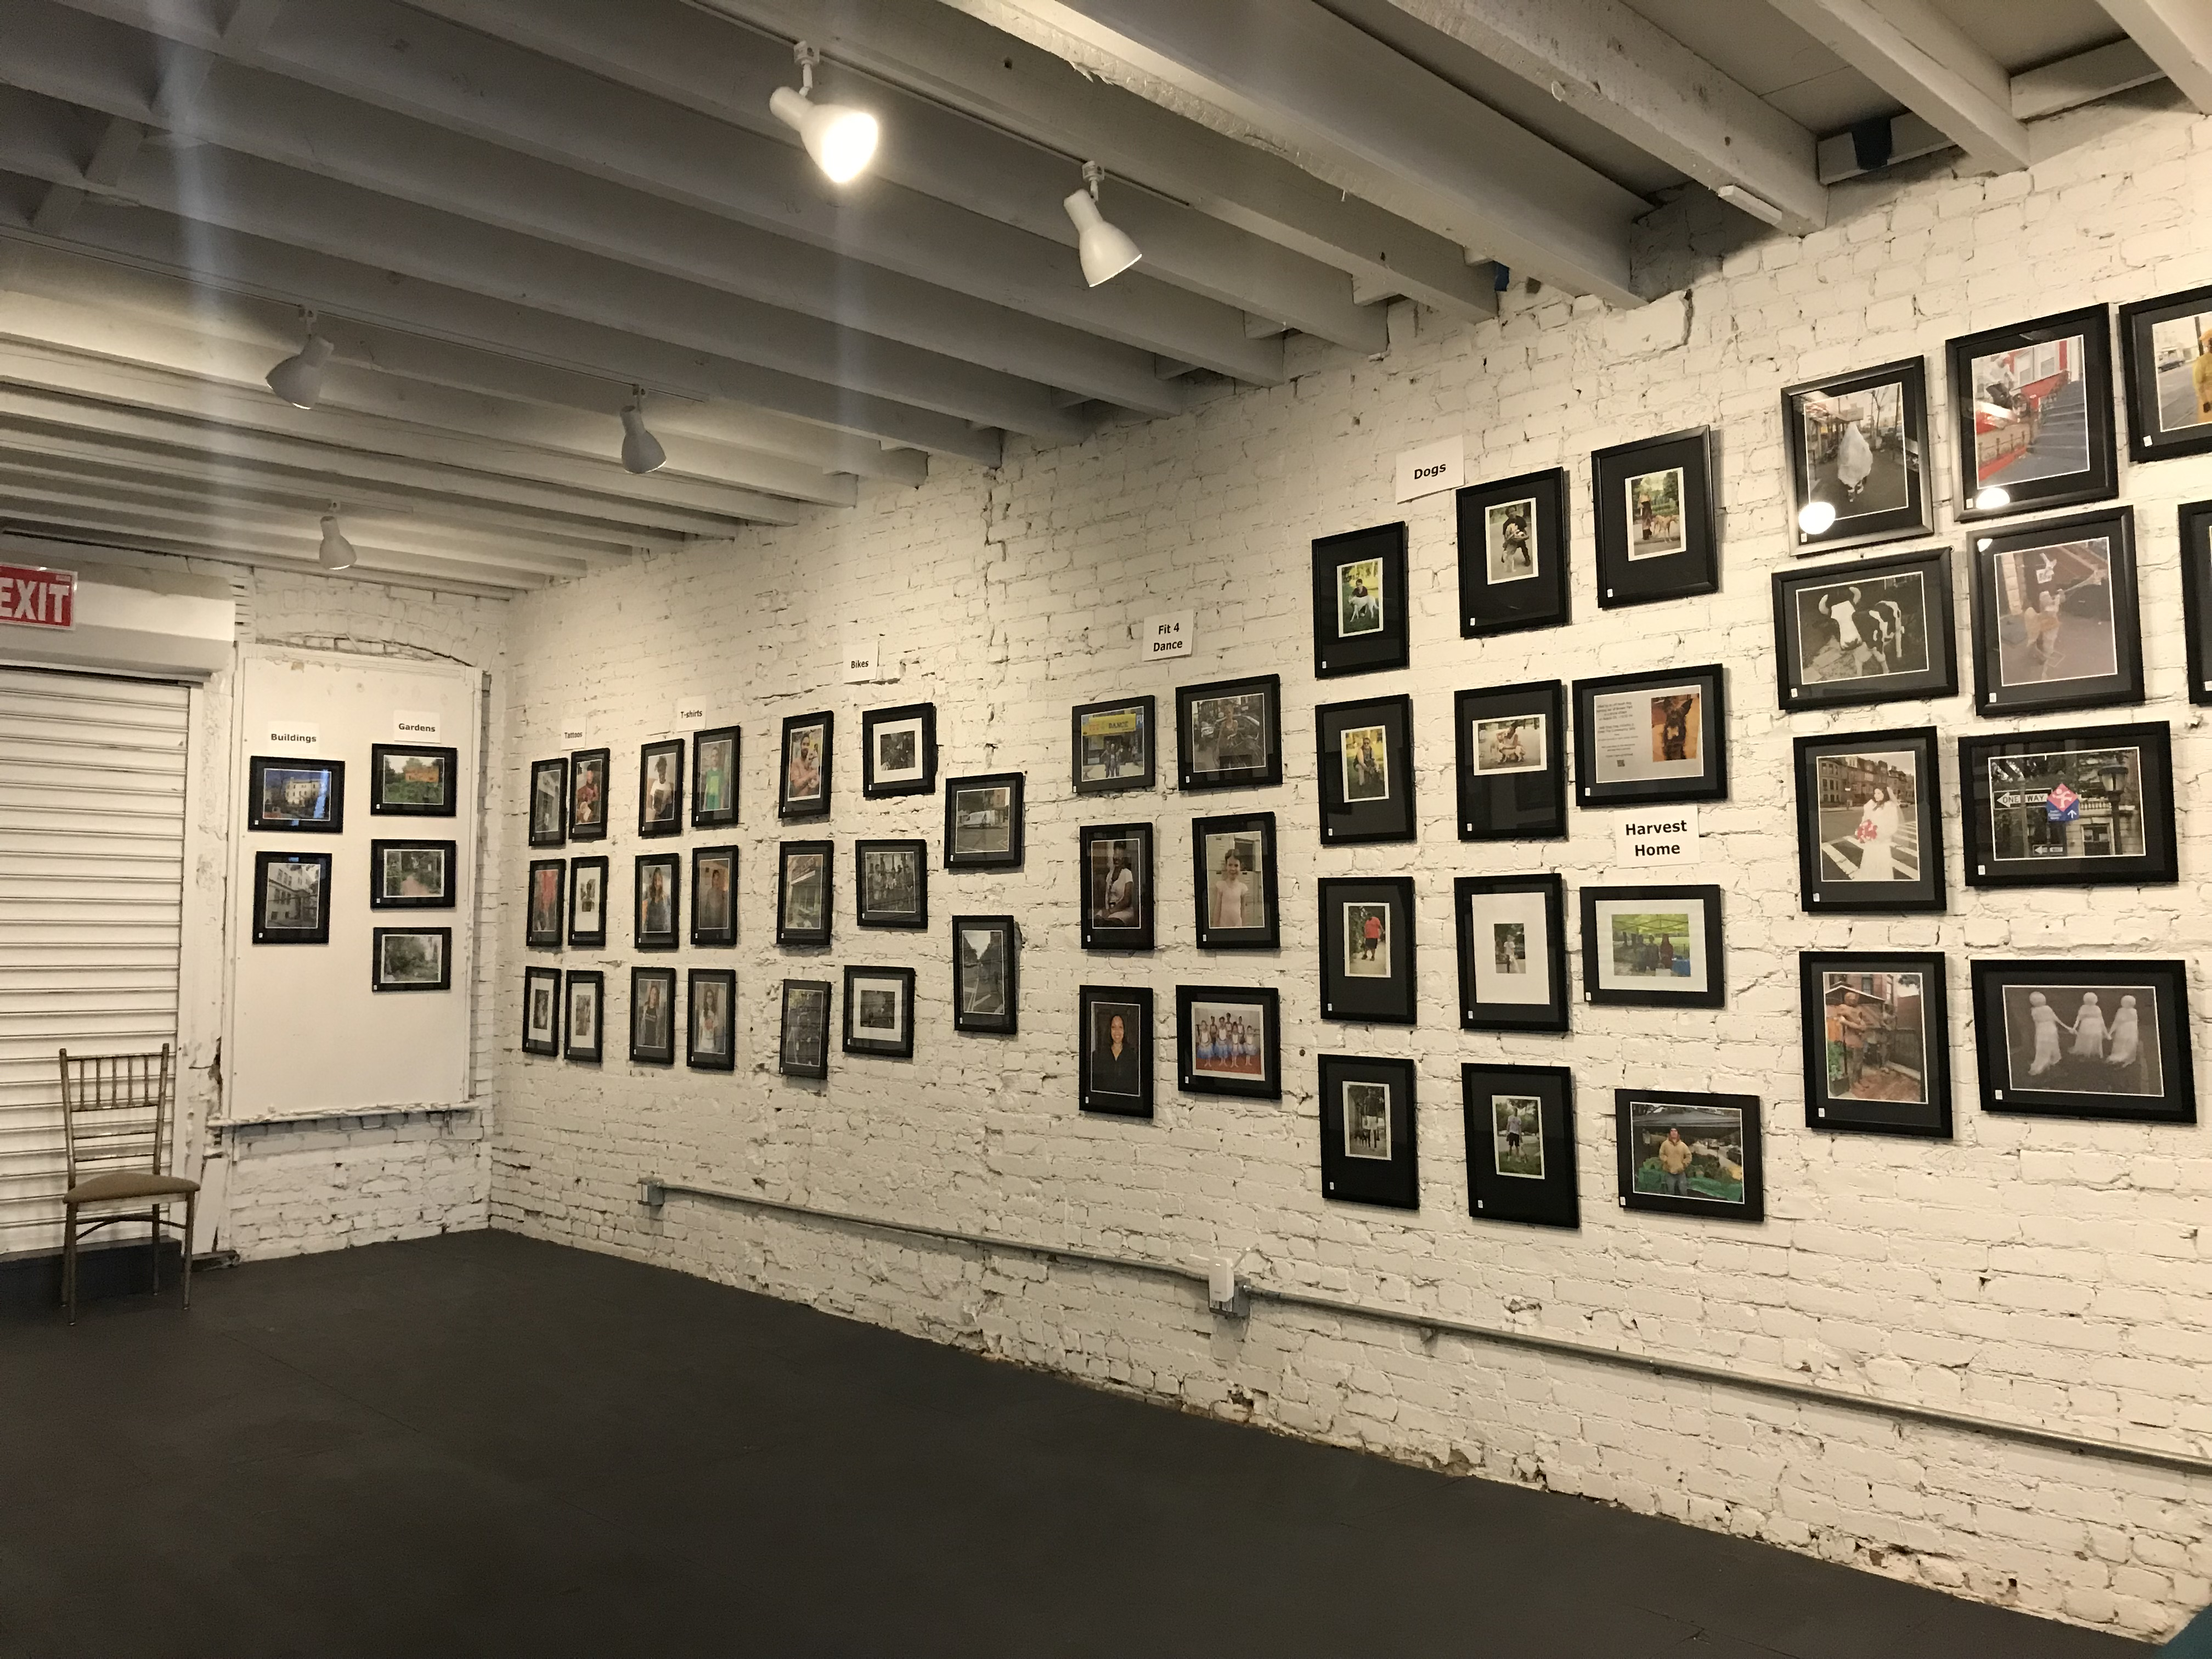 The Nostrand Avenue Improvement Association's photo exhibit in Studio 1 of the The Black Lady Theatre.